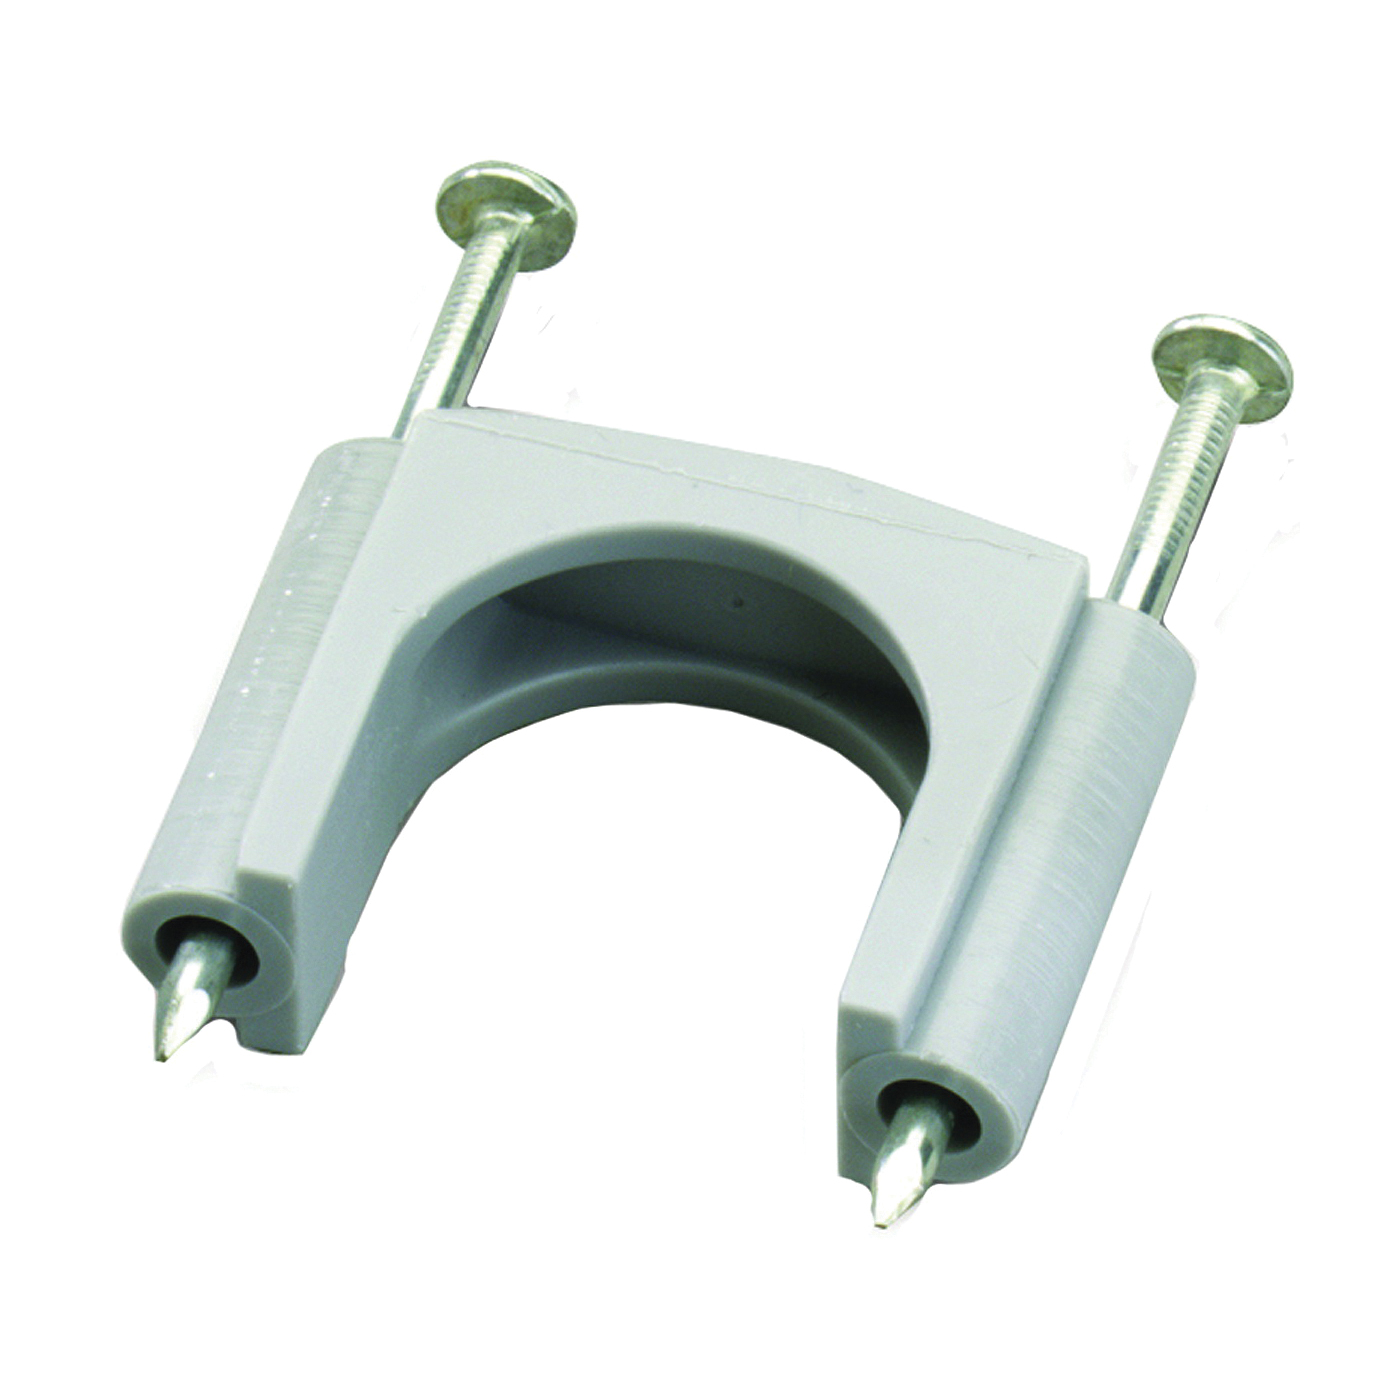 Picture of GB GSE-304 Strap Staple, Polyethylene, 4, Carded